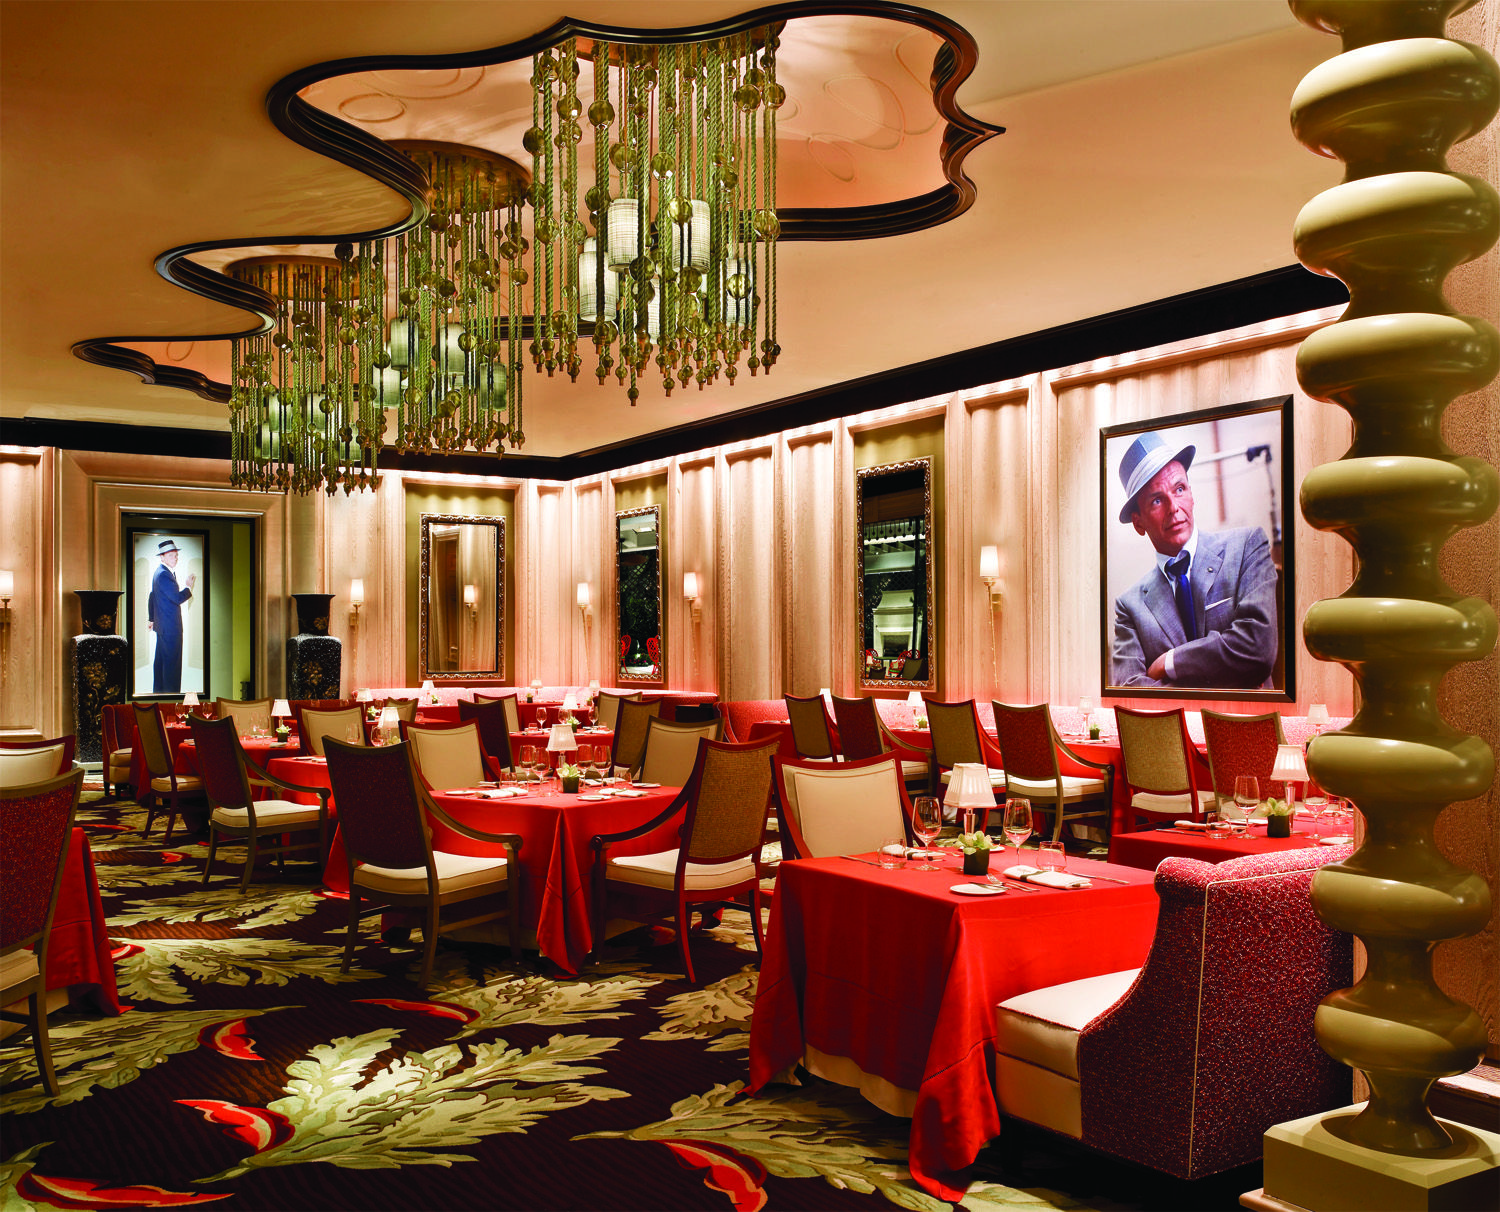 Best sinatra restaurant ideas on pinterest my way